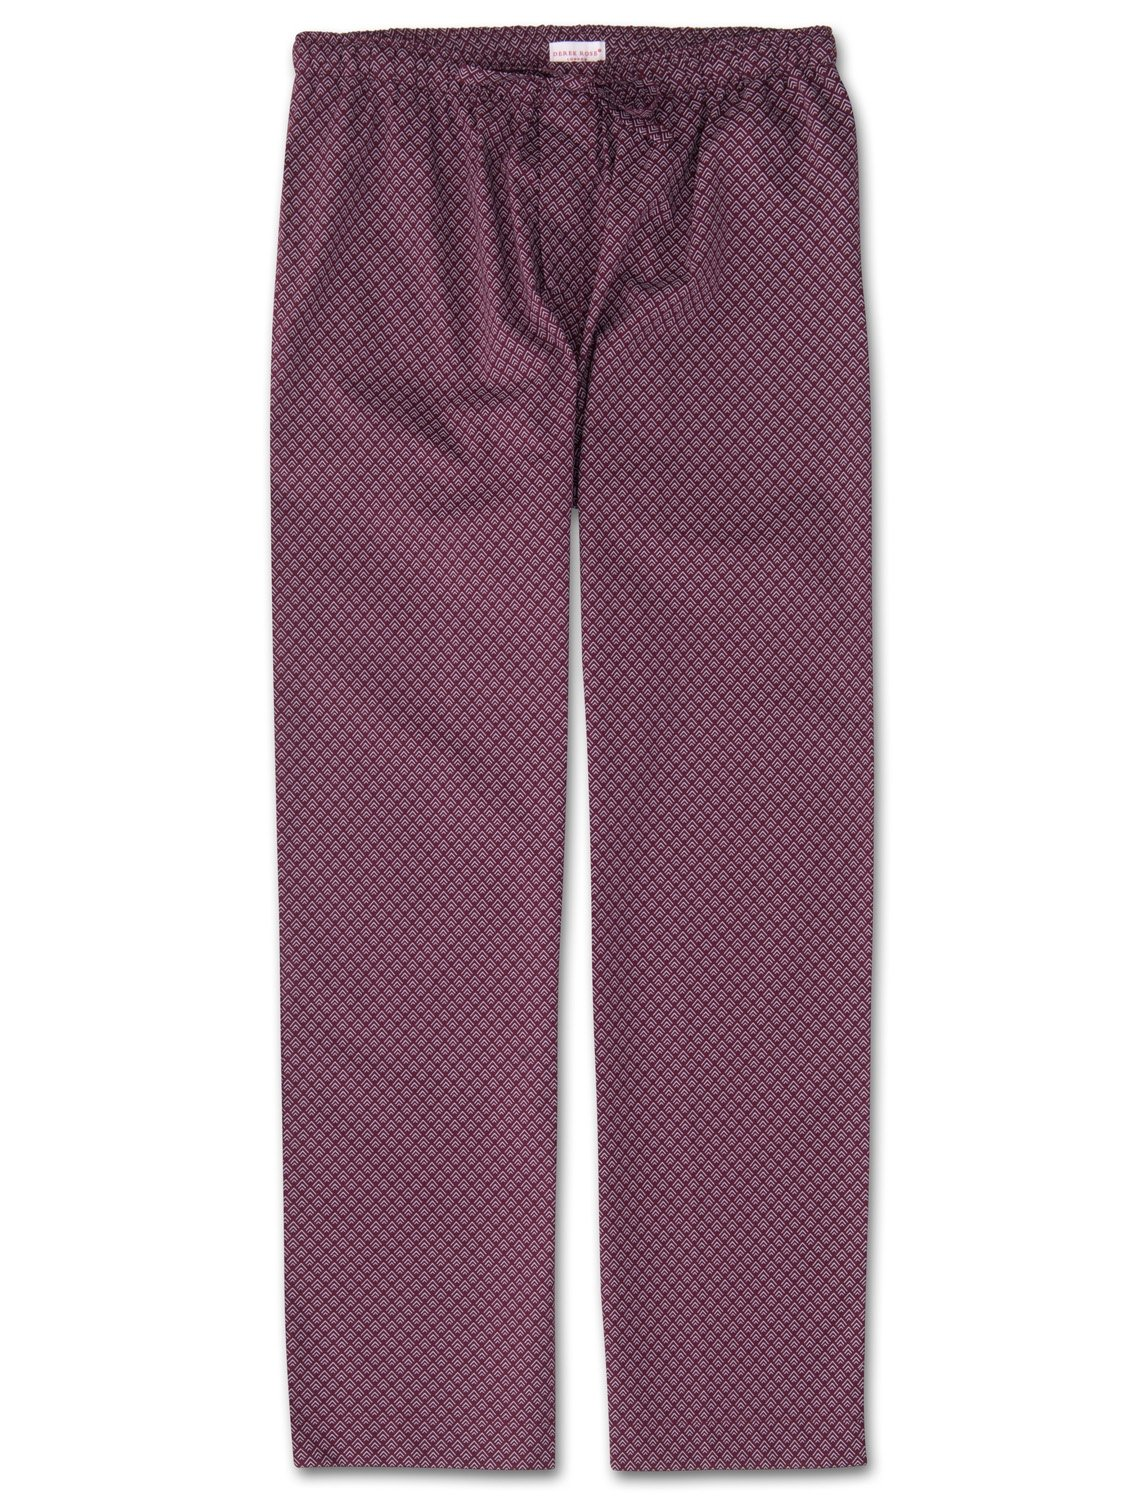 Men's Lounge Trousers Nelson 66 Cotton Batiste Burgundy